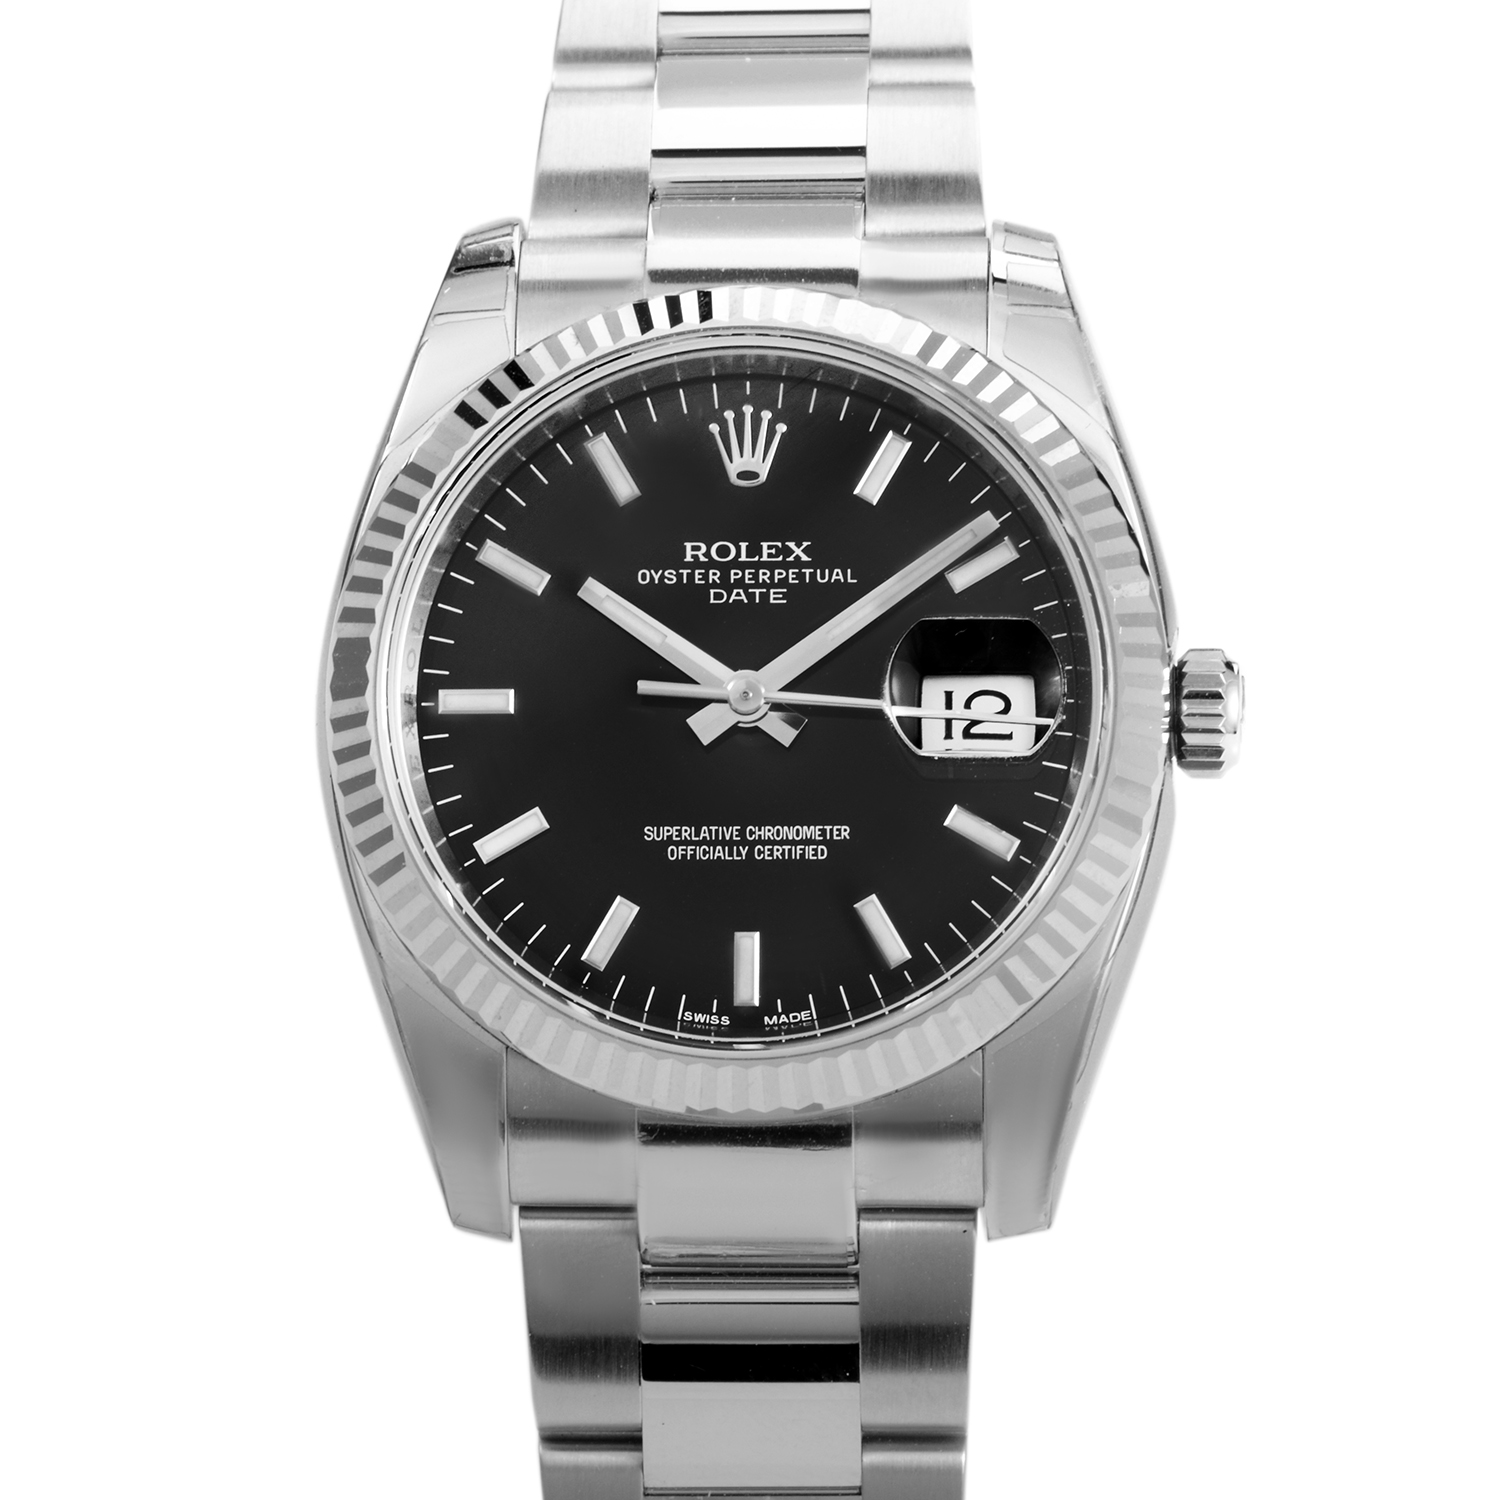 Oyster Perpetual Date 34mm Fluted Bezel 115234 bkso